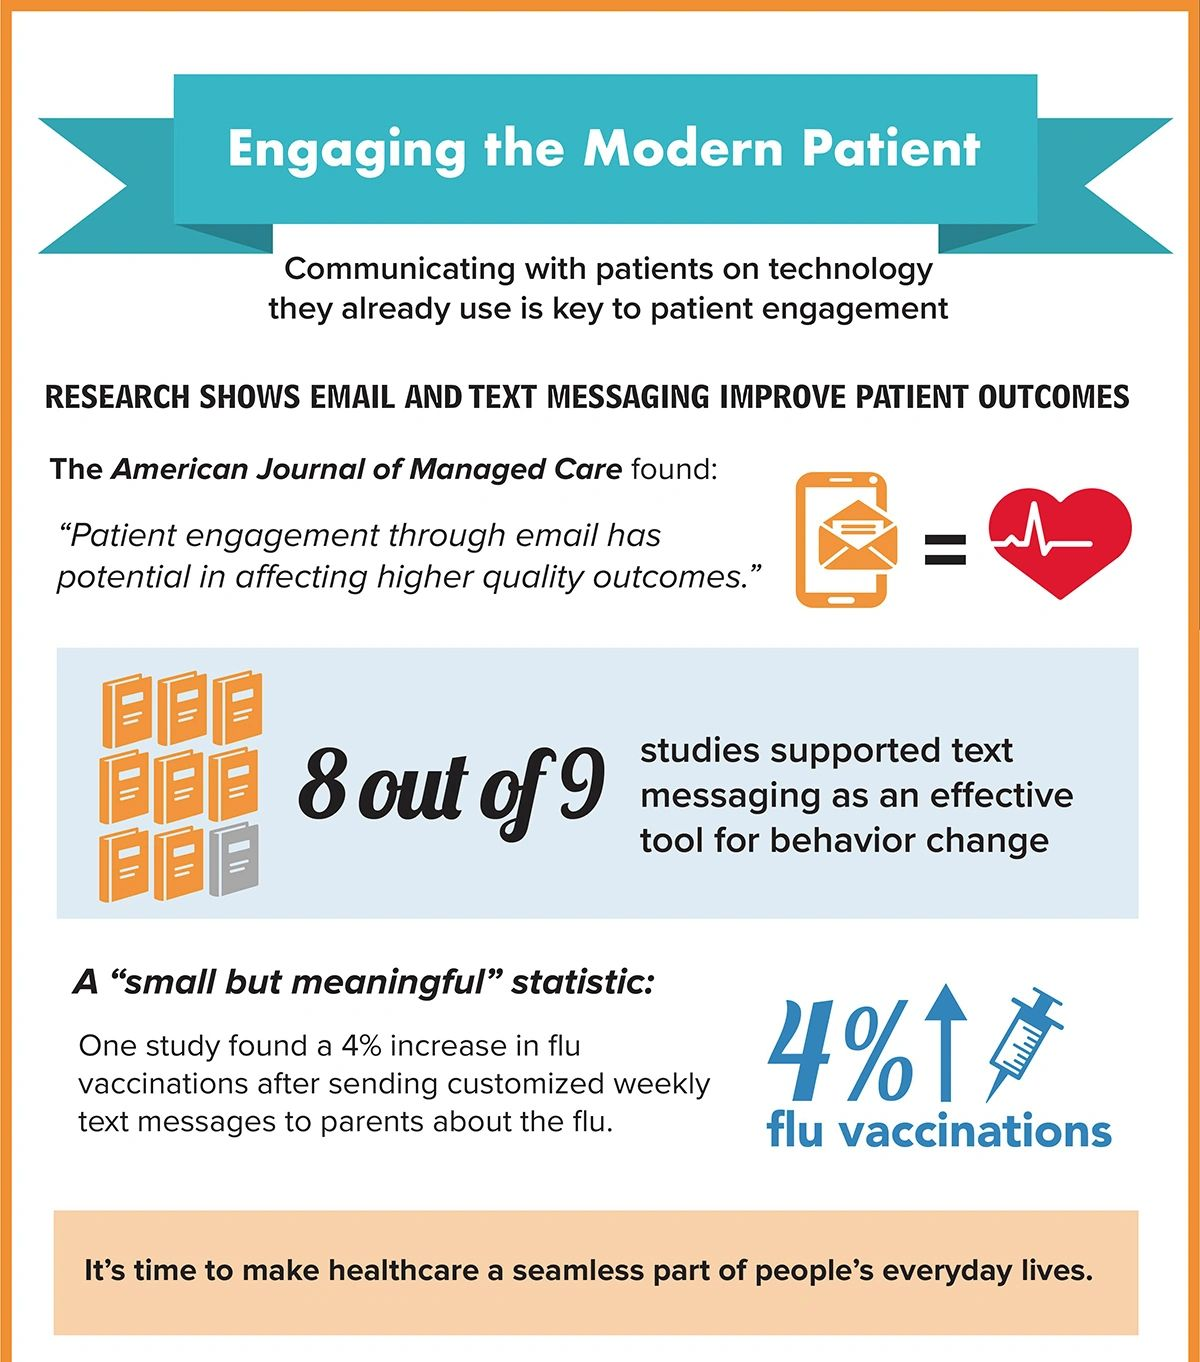 Engaging the Modern Patient [Infographic]